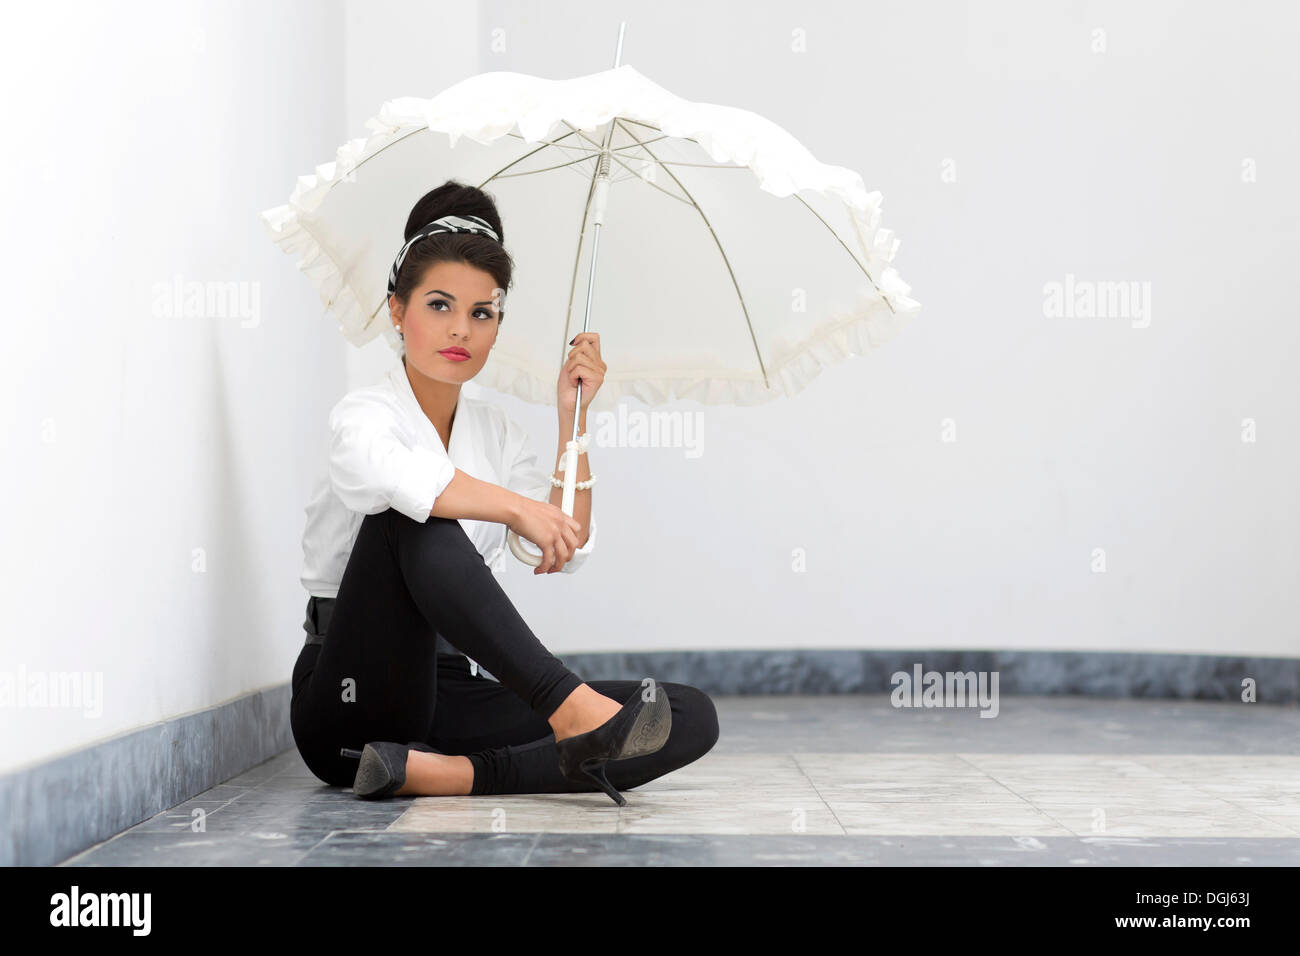 ff19cc63b Young woman with an updo hairstyle wearing a white shirt, black leggings  and high heels posing with a white umbrella while